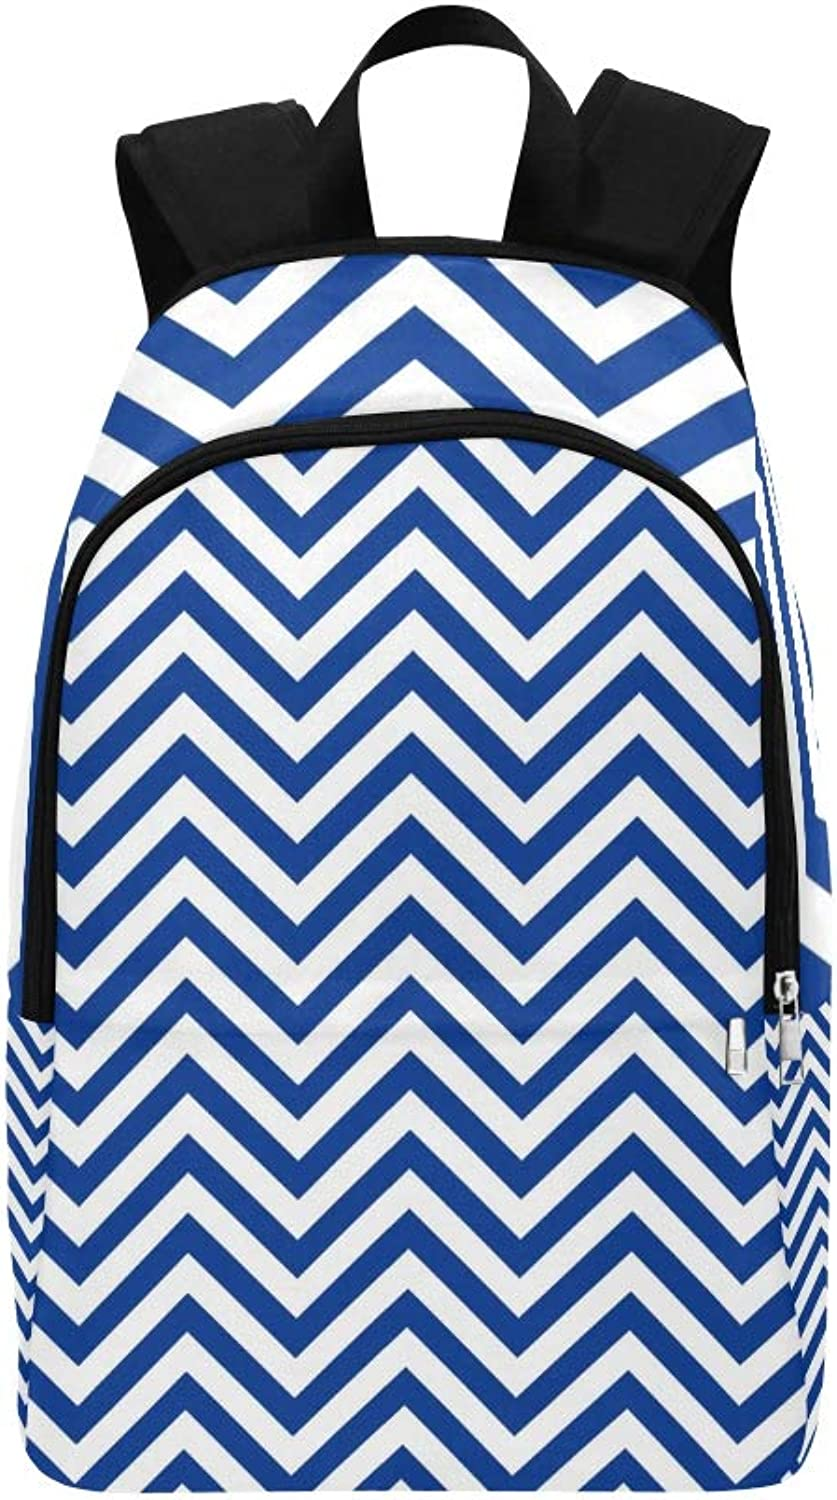 blueee White Chevron Casual Daypack Travel Bag College School Backpack for Mens and Women